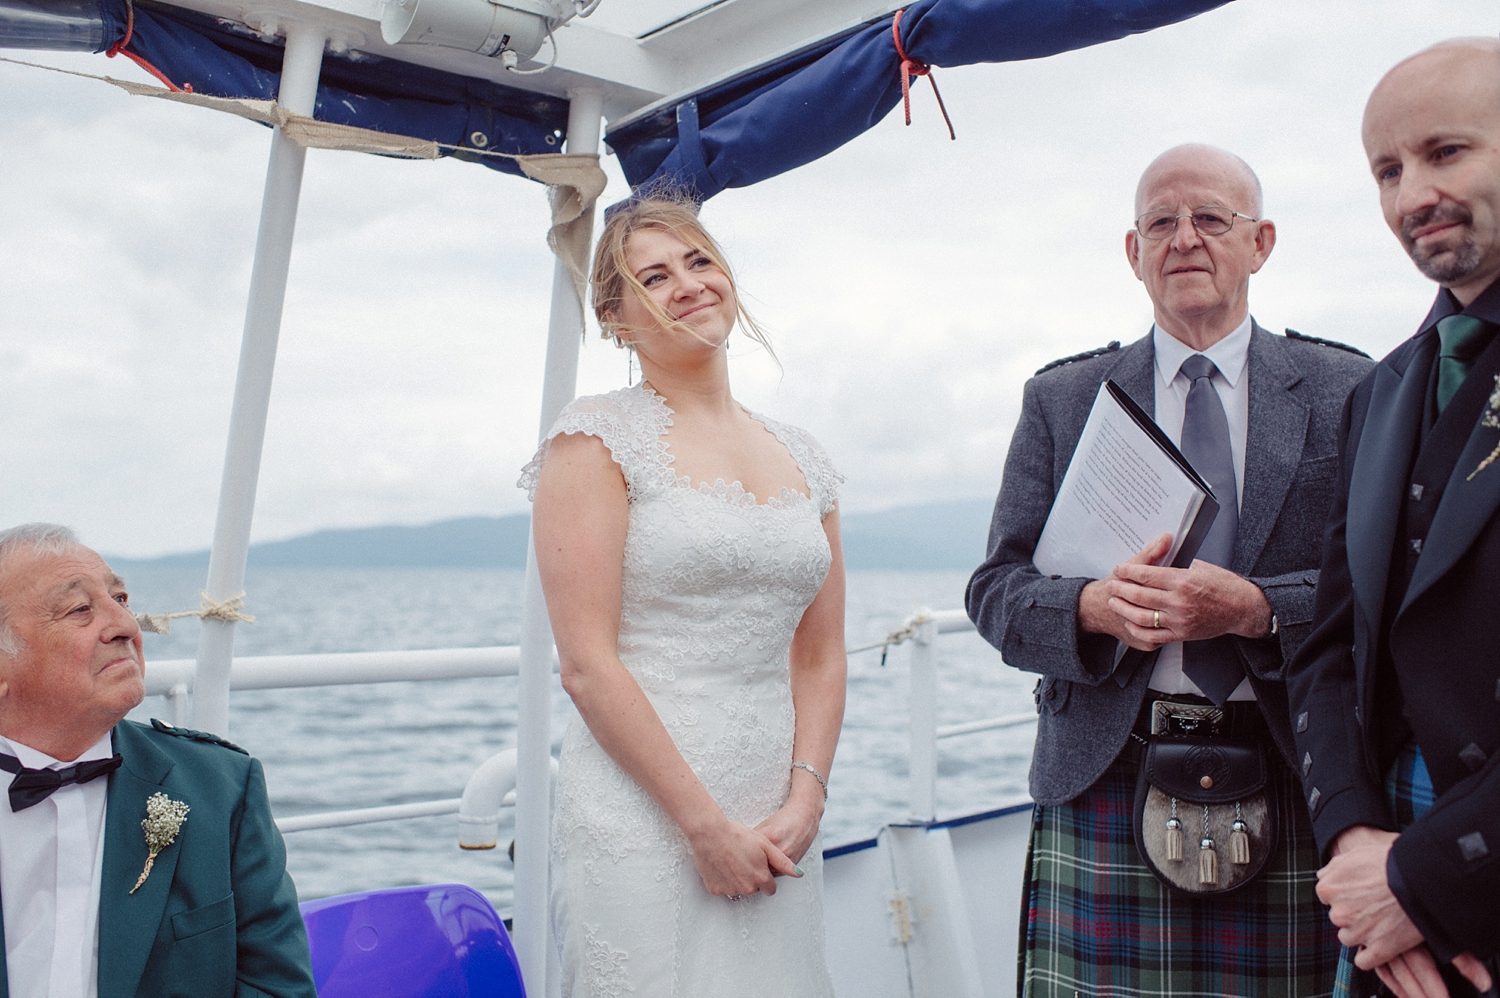 084-lisa-devine-photography-alternative-wedding-photography-skye-scotland.JPG